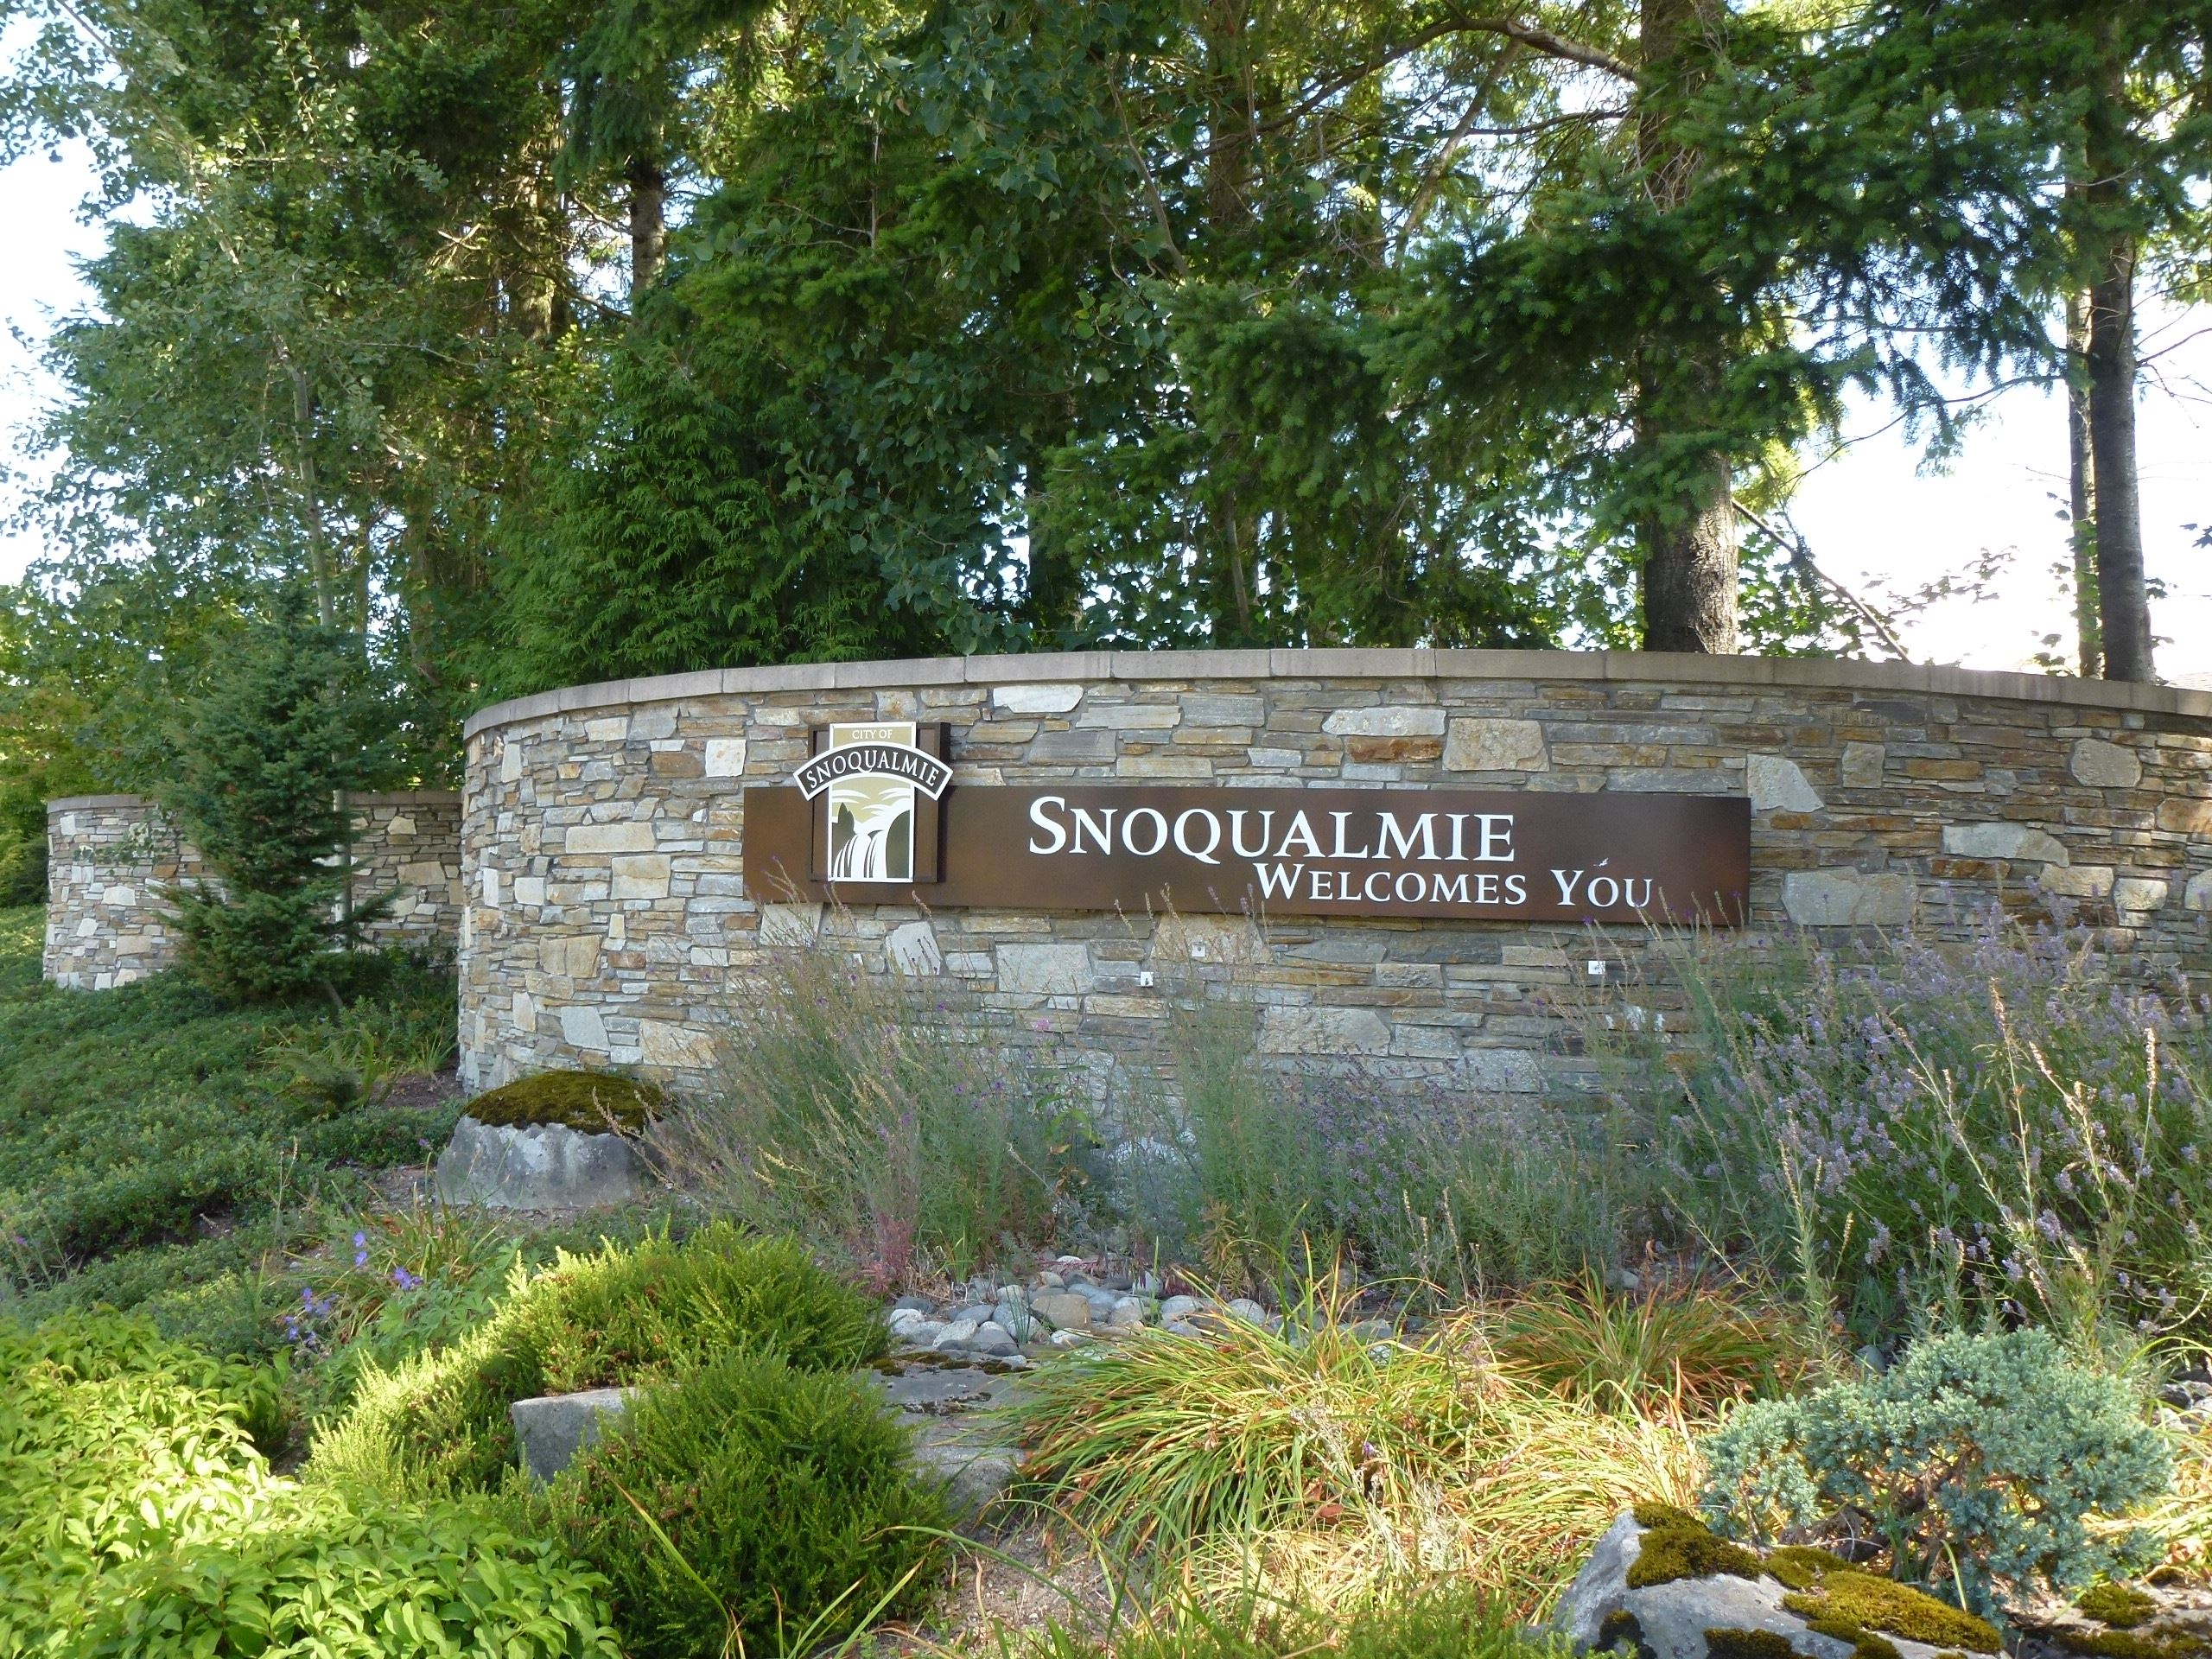 This is a sign that reads Welcome to Snoqualmie.